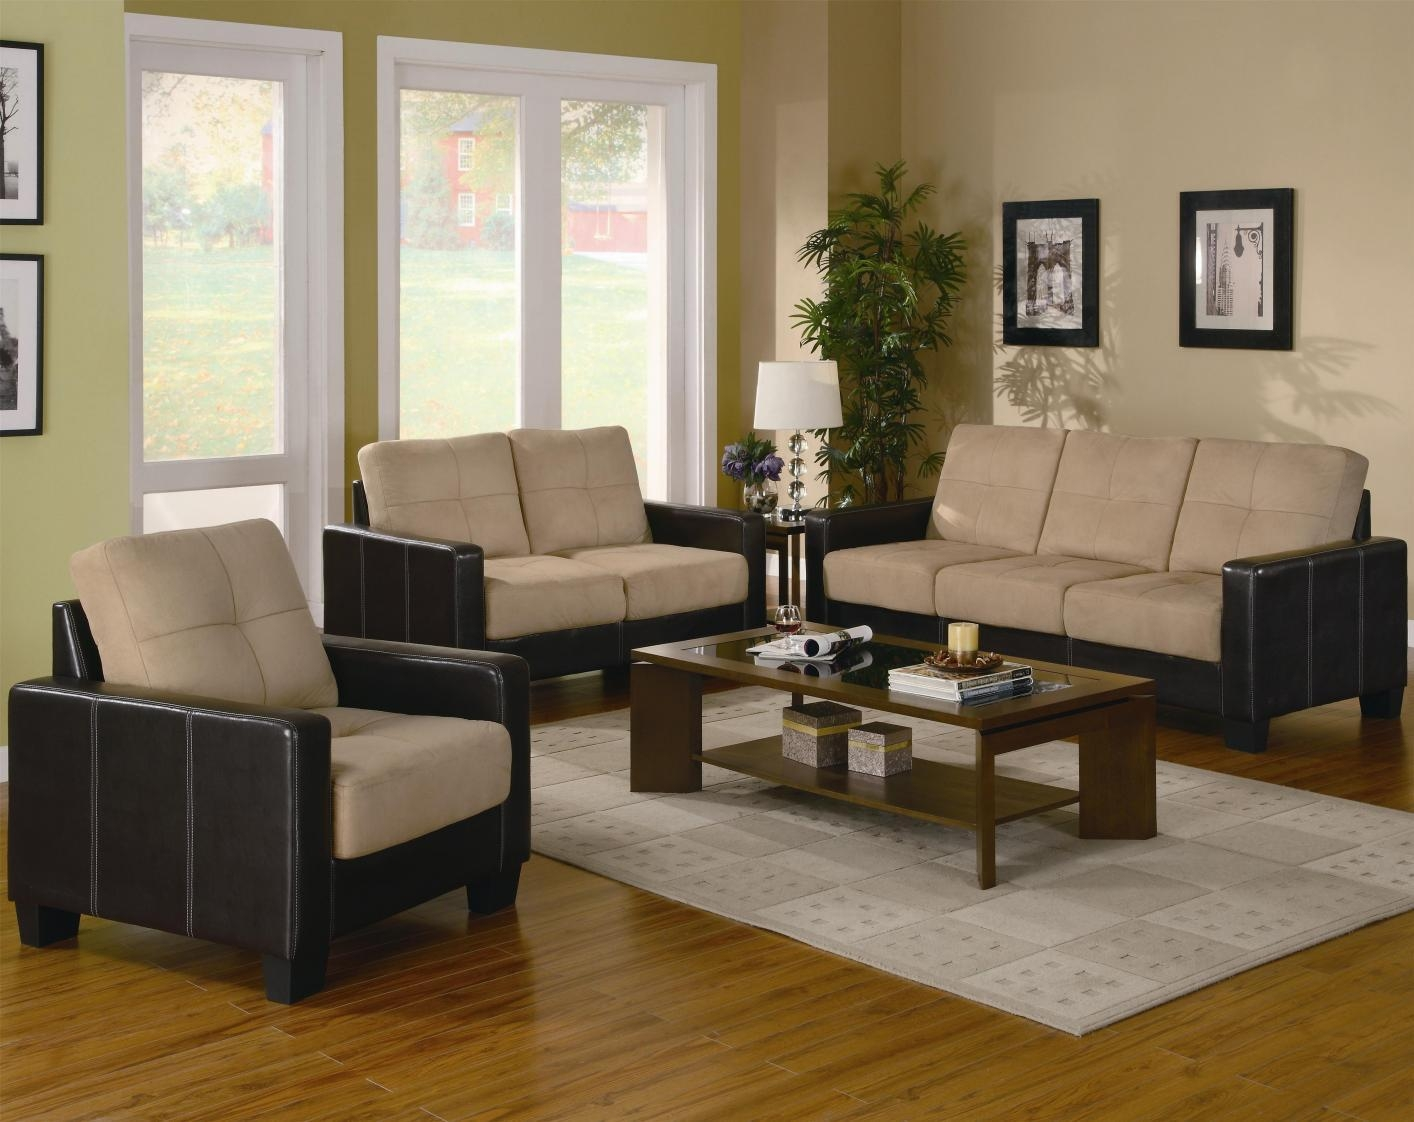 Beige Leather Sofa Loveseat And Chair Set – Steal A Sofa Furniture Intended For Sofa Loveseat And Chair Set (Image 3 of 20)